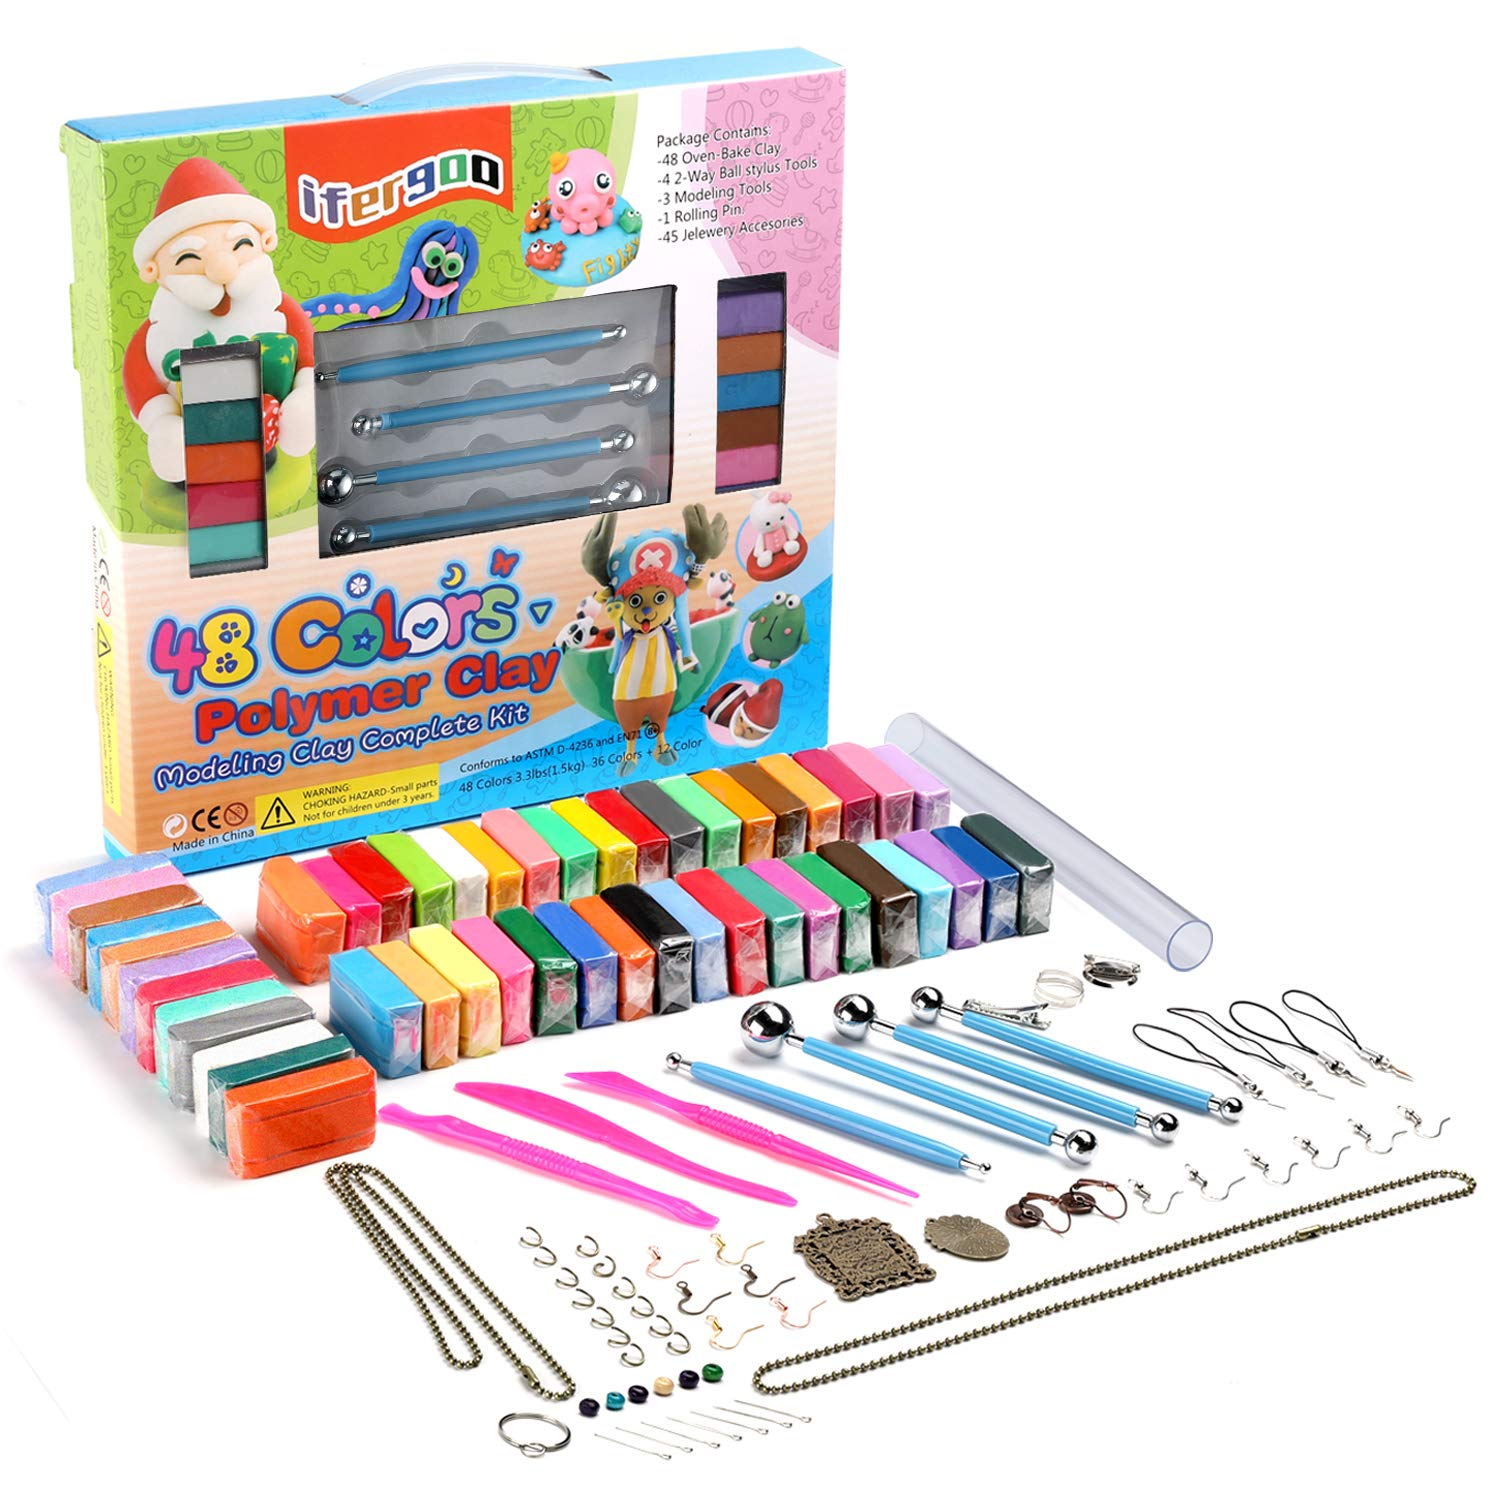 Polymer Clay Kit, 48 Colors Oven Bake Clay, 36 Normal Colors + 12 Colors Special Colors,3 Modeling Tools and 40 Accessories, Safe and Nontoxic DIY Baking Clay Blocks